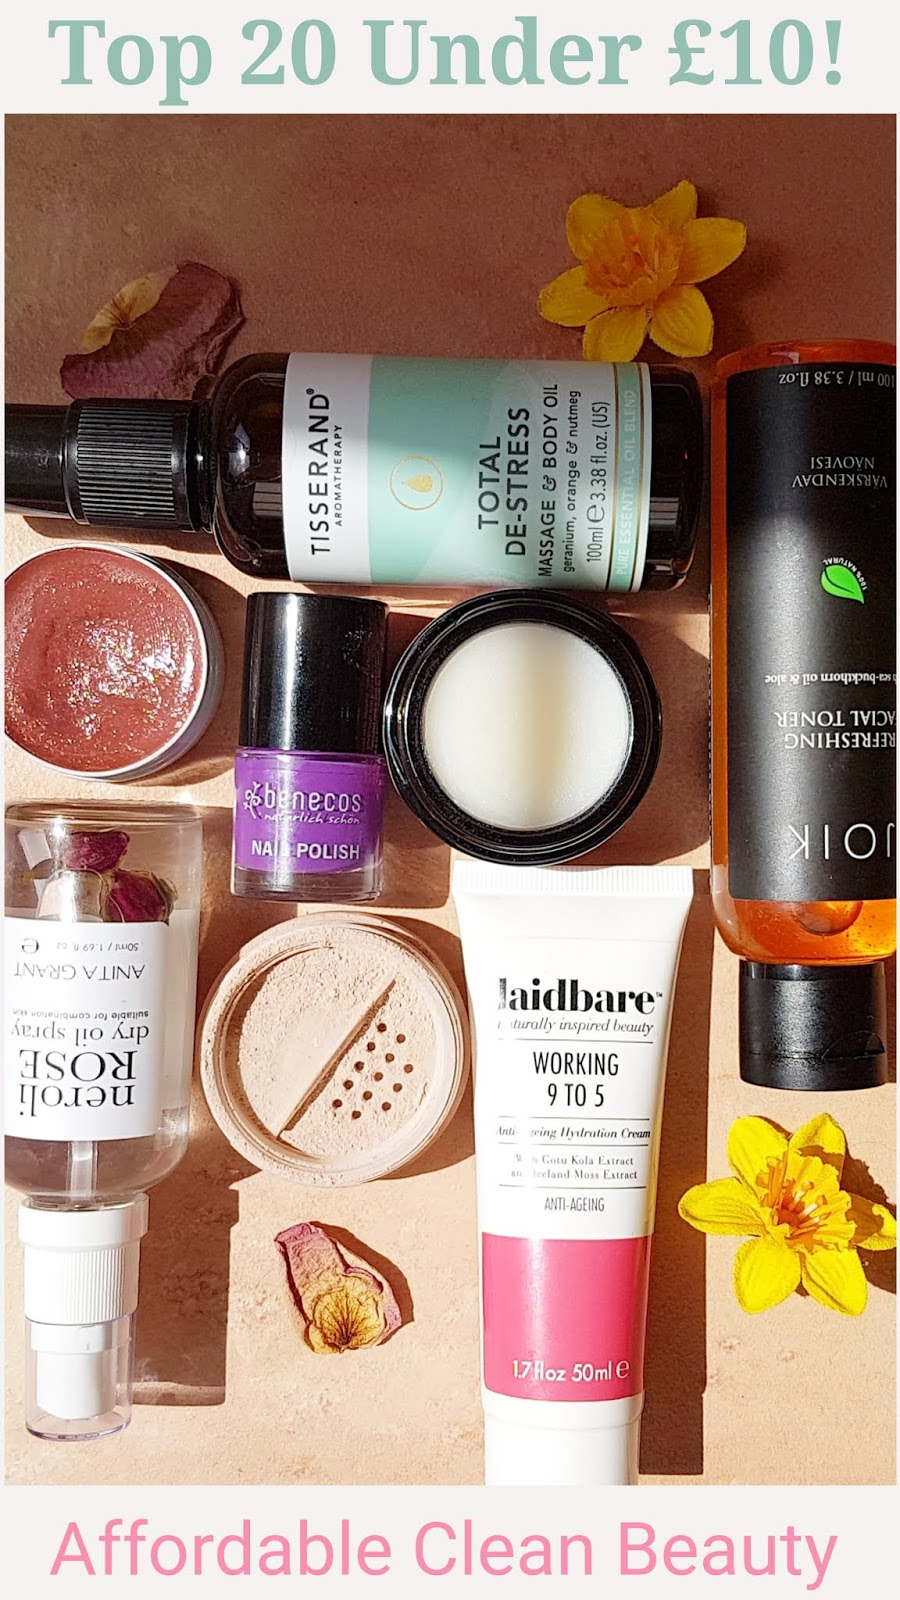 Affordable Green Beauty Roundup - Cheap Natural Products